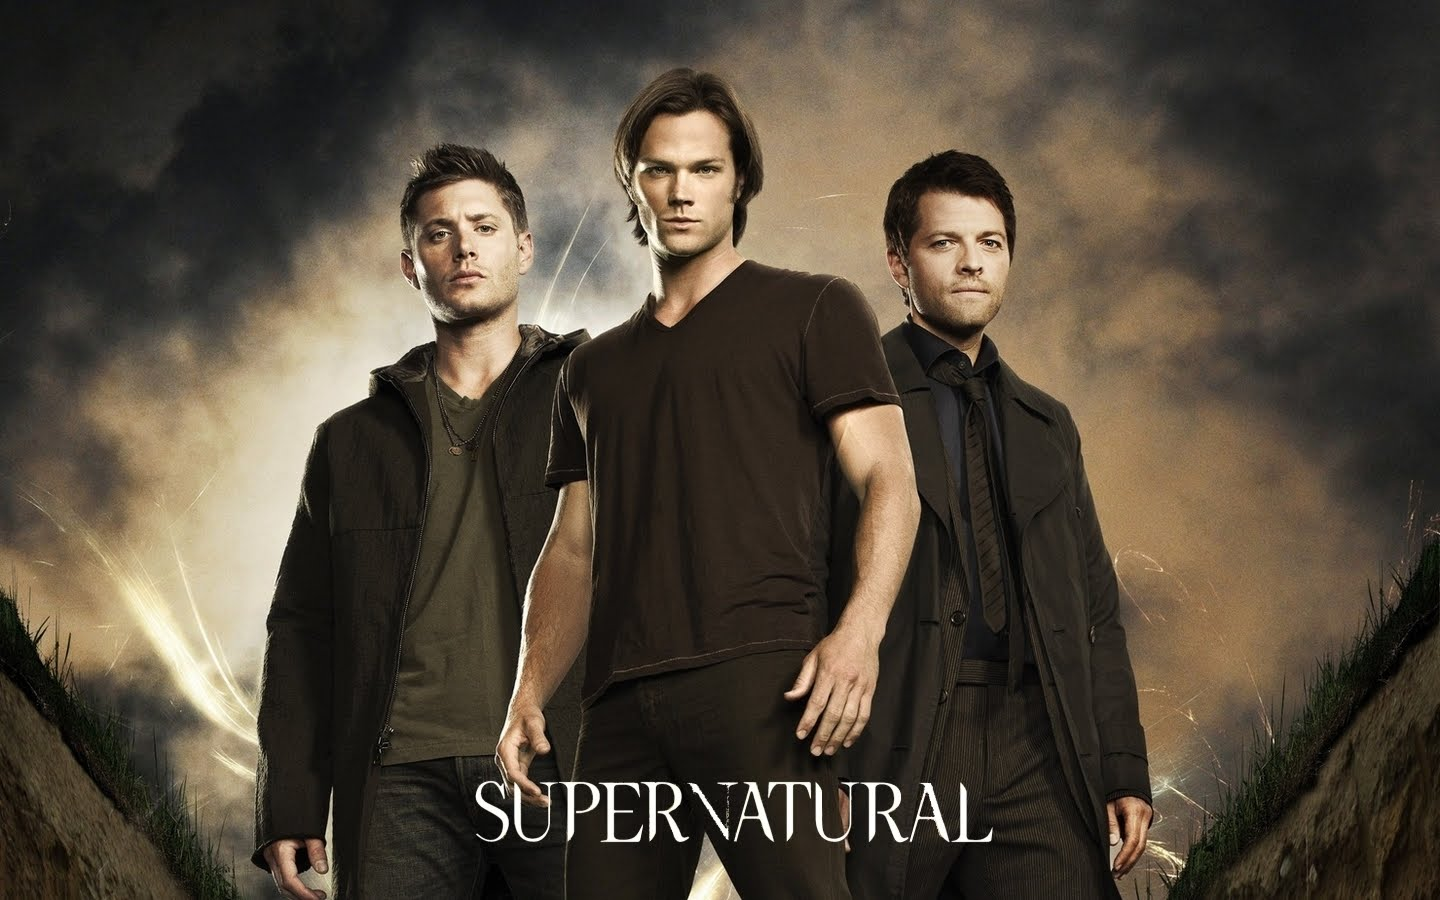 """Supernatural"" (Season 5) - TV spec script"